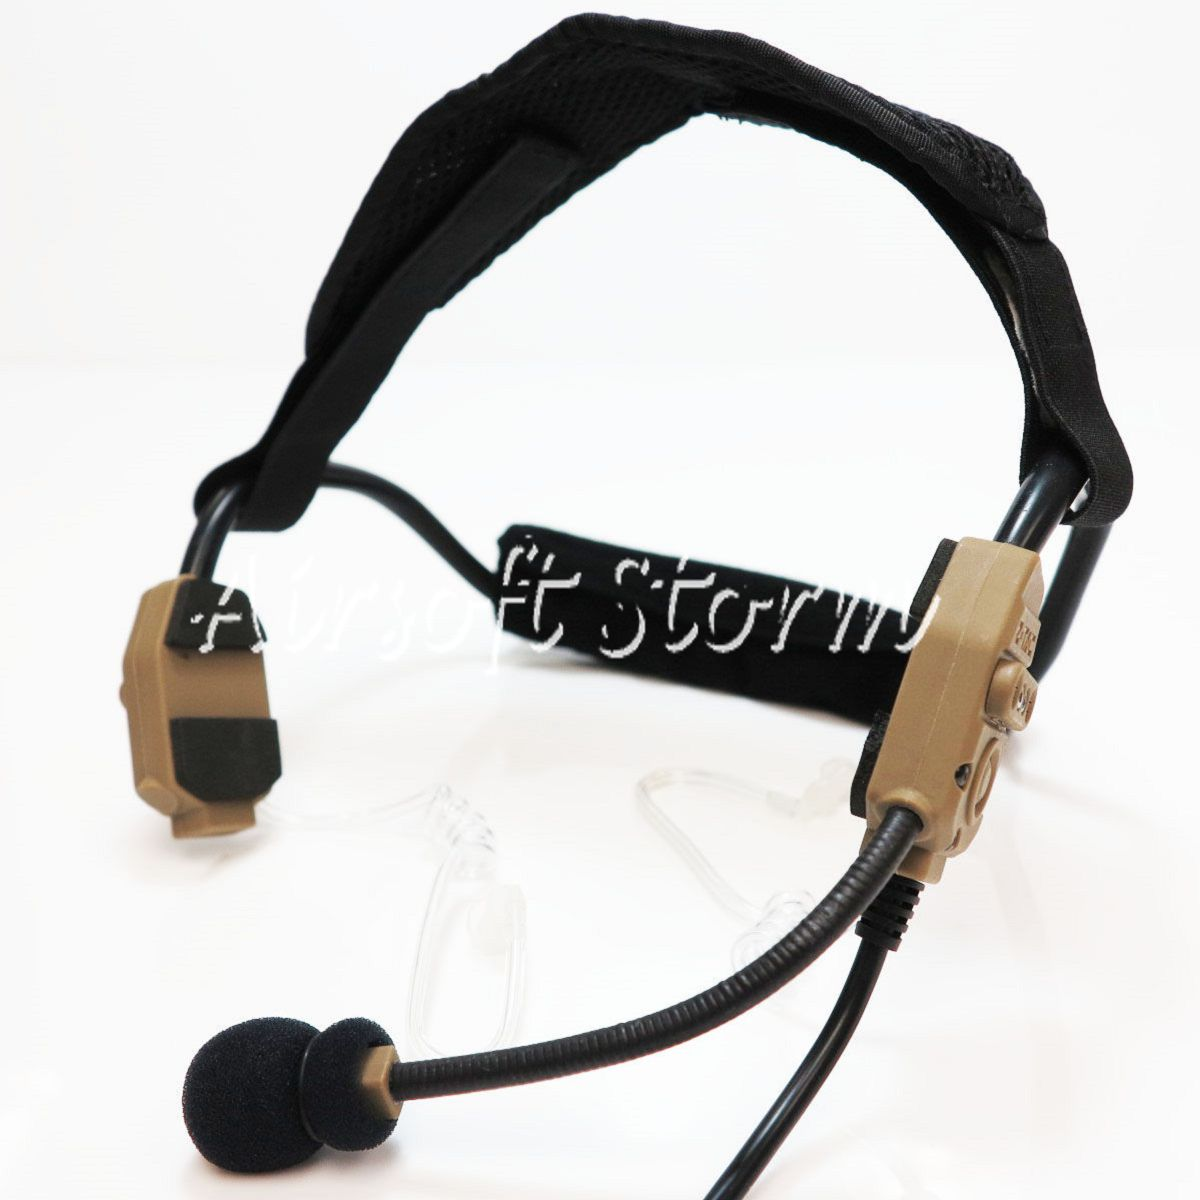 Airsoft Gear SWAT Z Tactical THREAT4 X-62000 Headset Dark Earth/Black